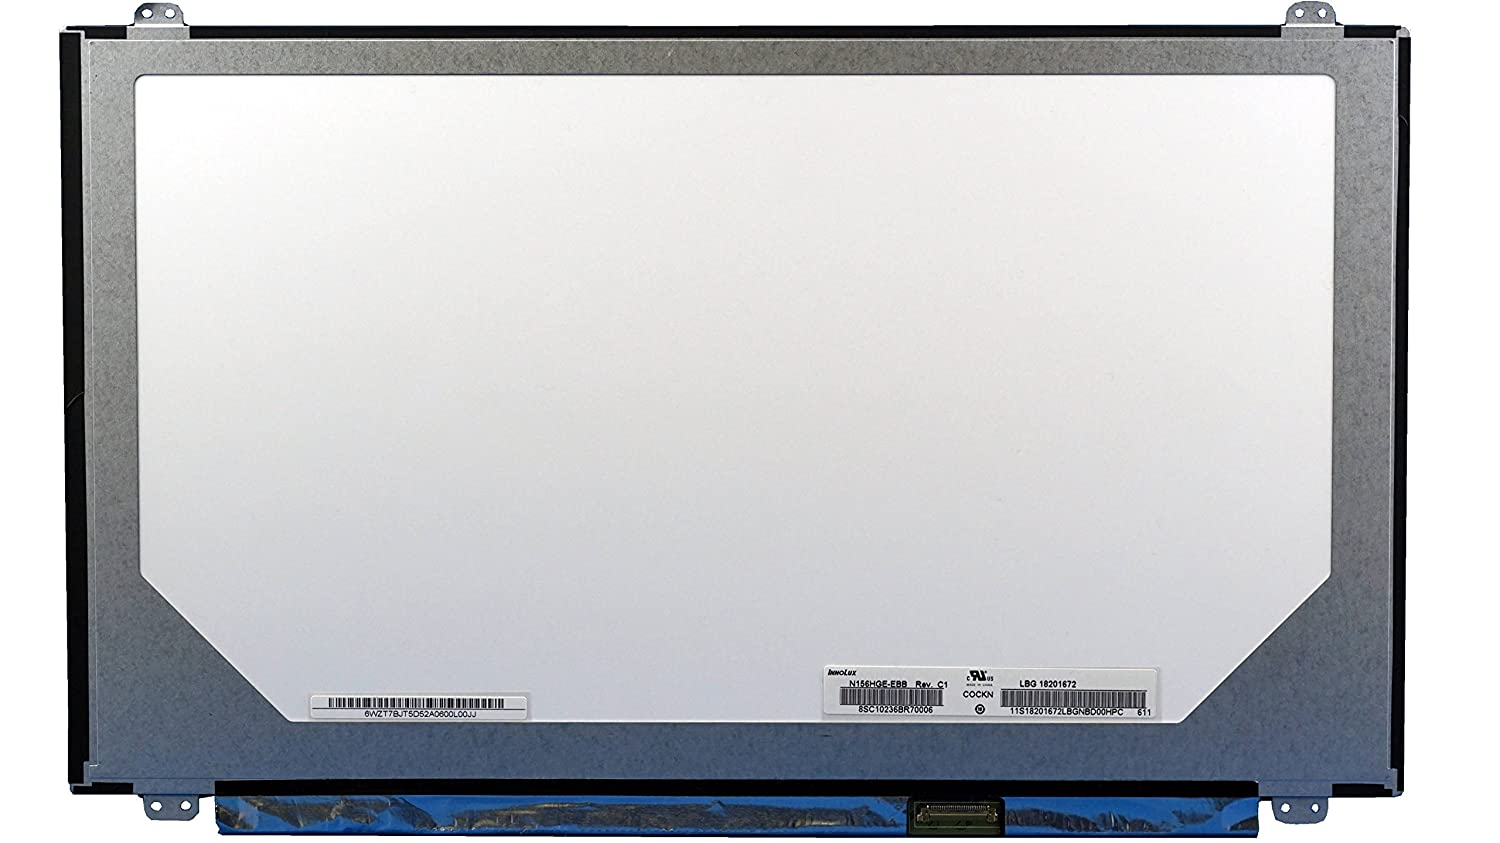 ASUS F555L F555LA only for Full HD 1920x1080 New Replacement LCD Screen for Laptop LED Full HD Matte